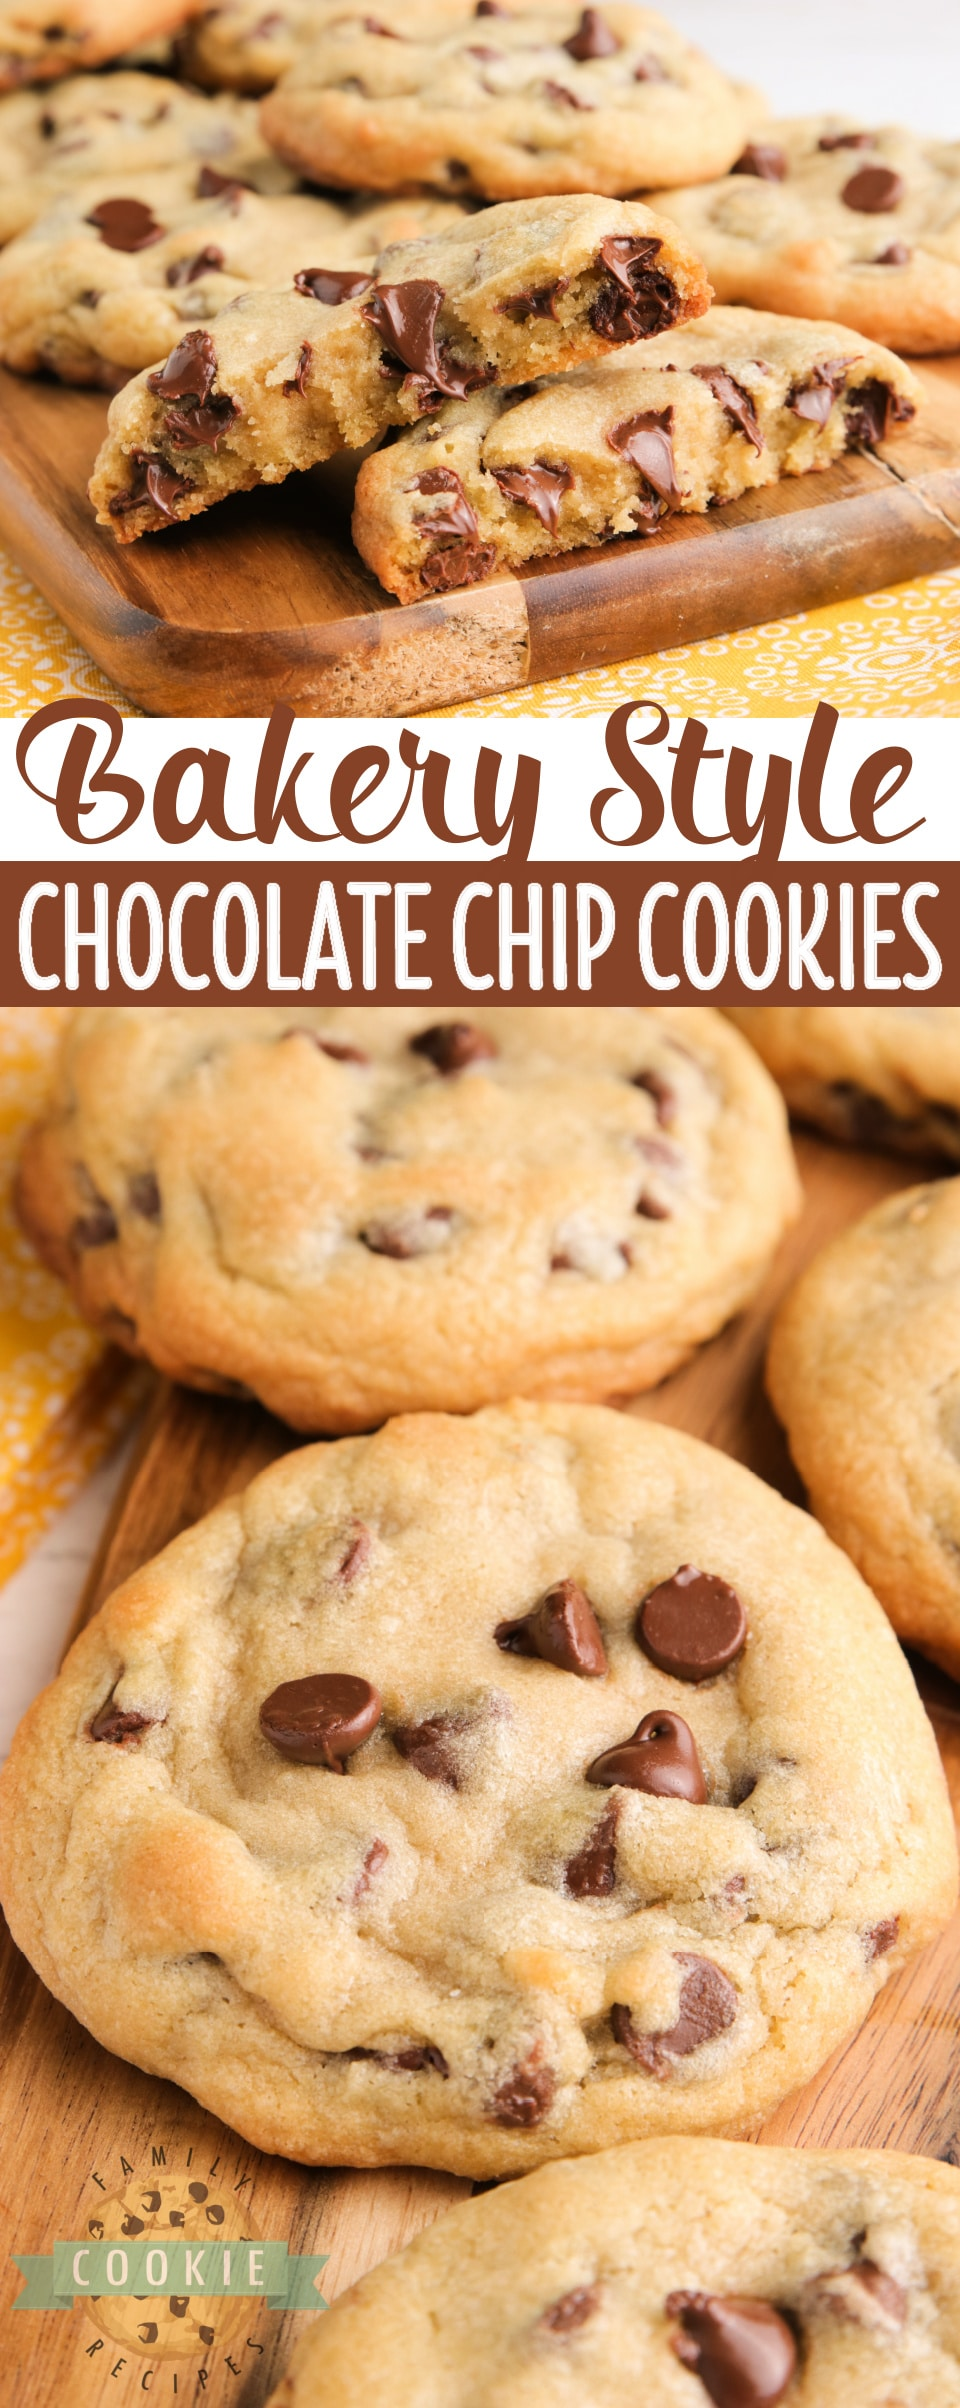 Bakery Style Chocolate Chip Cookies are large, crisp on the very outside and soft in the middle. The perfect chocolate chip cookie recipe that you've been looking for all your life! via @buttergirls